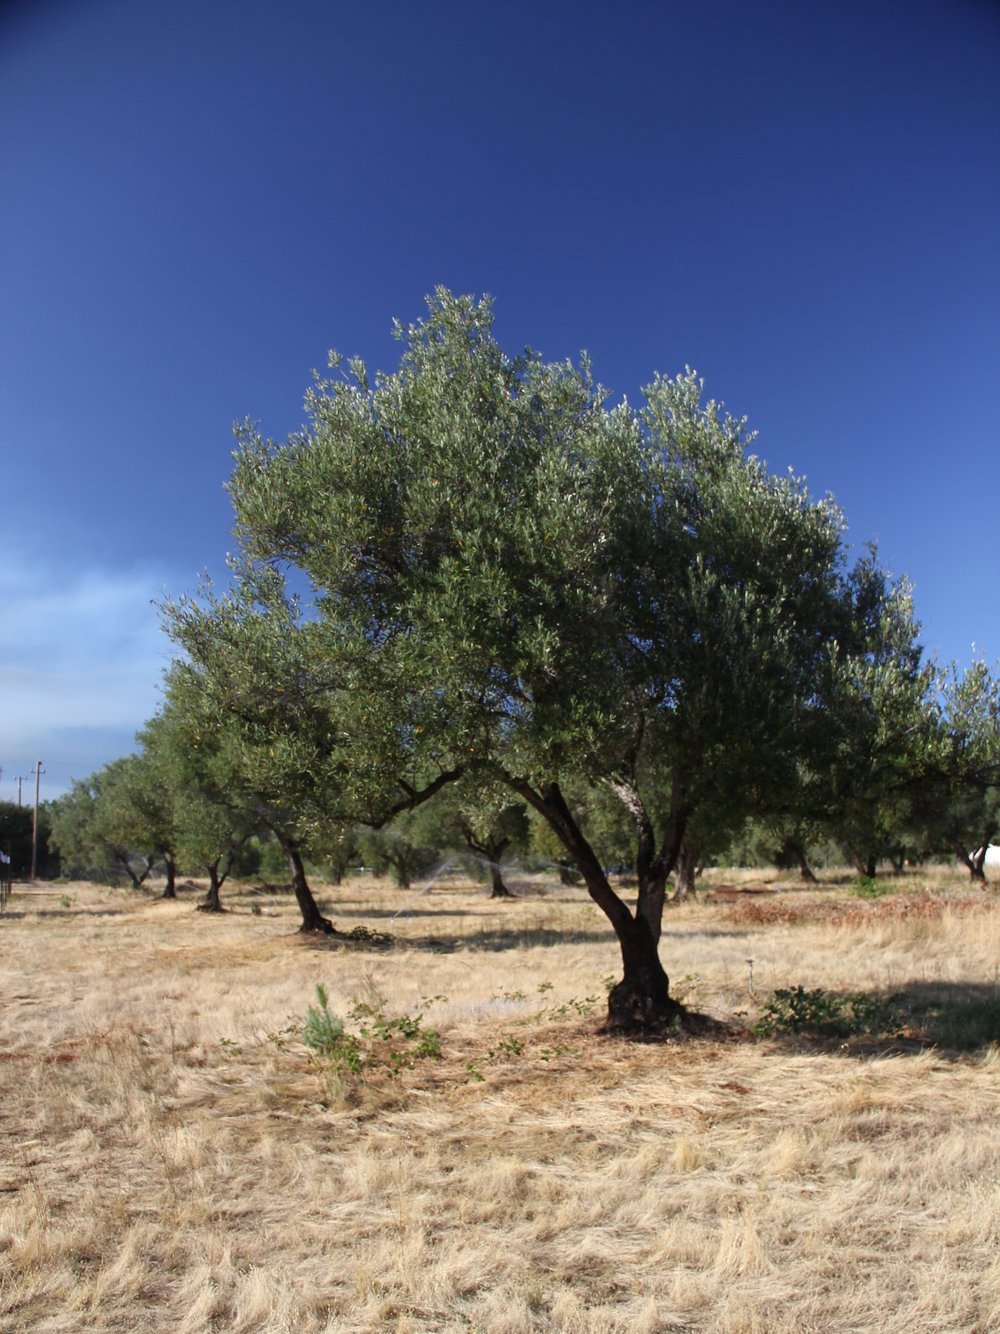 Our little five acres of the world was neglected for years by the time we found it. Olive trees, however, are (luckily!) incredibly resilient.